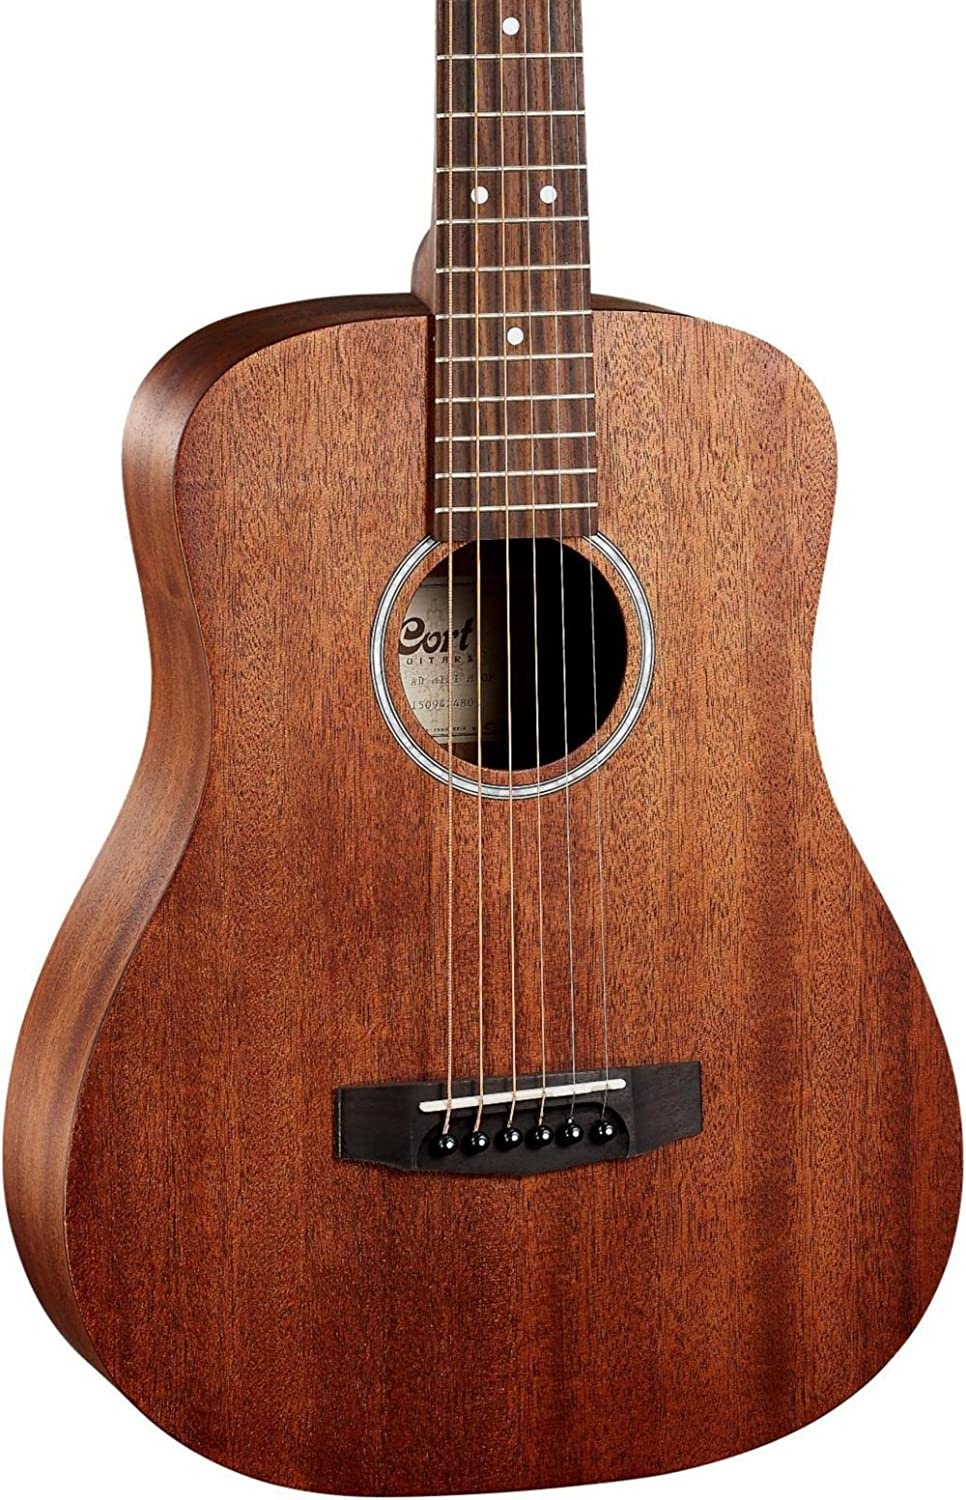 Guitarra acustica tipo dreadnought mini